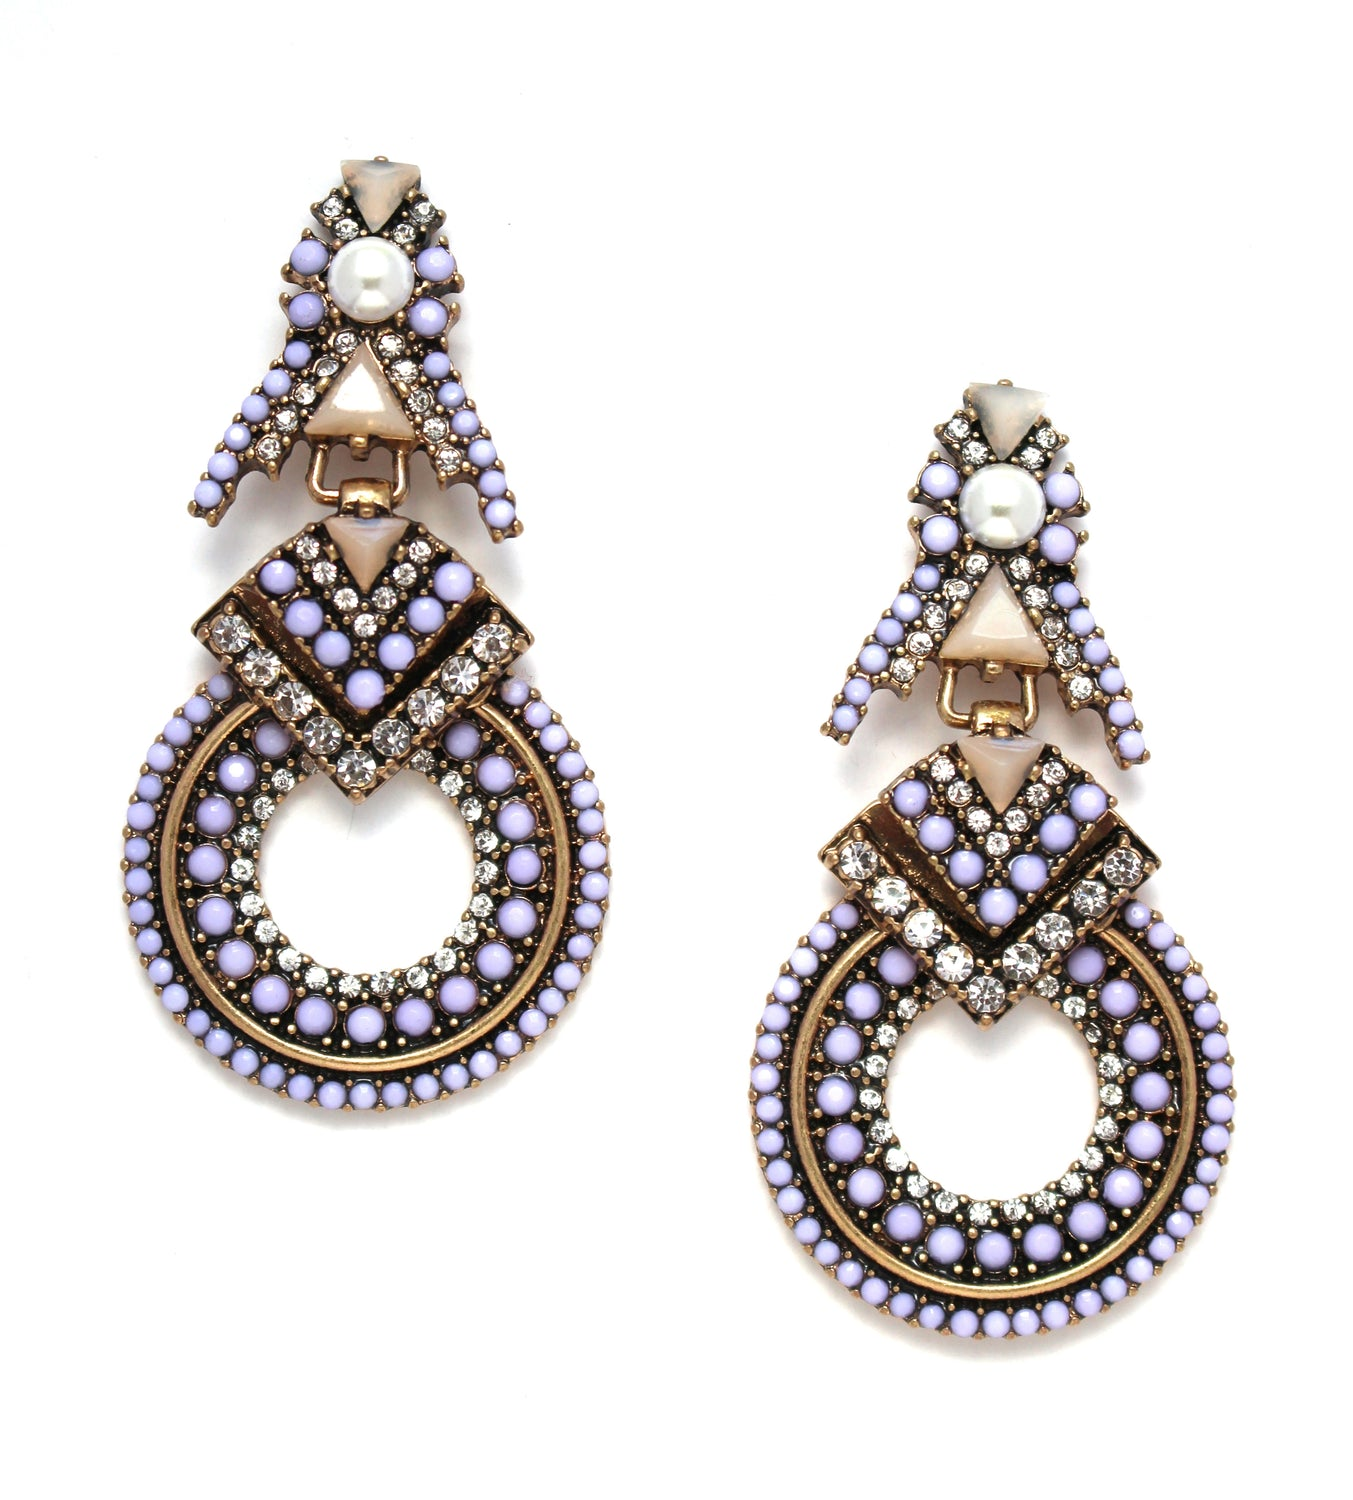 Viola Glam Statement Earrings